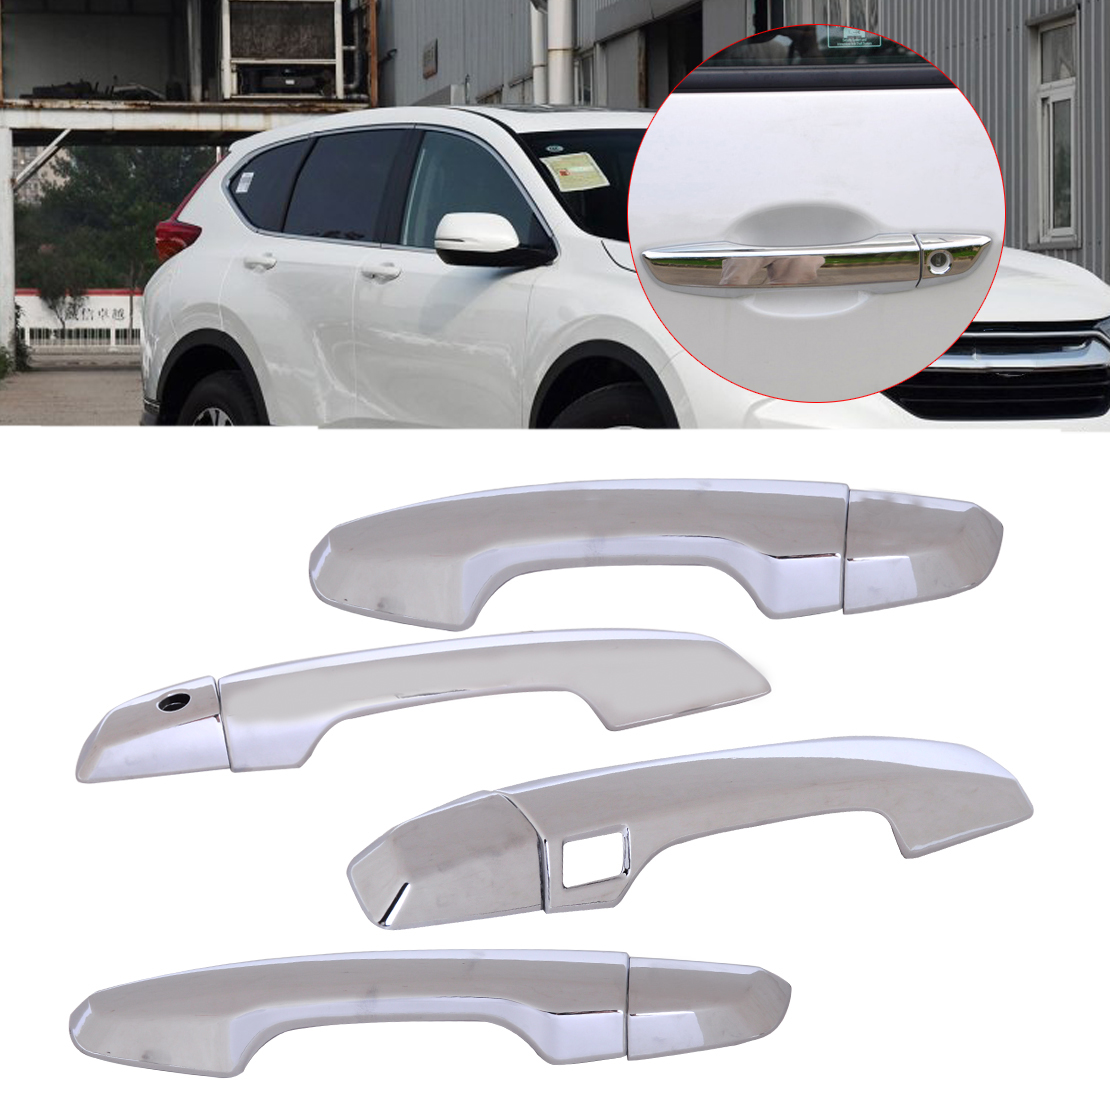 beler 8pcs ABS Plastic Silver Outer Door Handle Trim Cover Molding Car Styling Accessories Decorations Fit For Honda CRV 2017